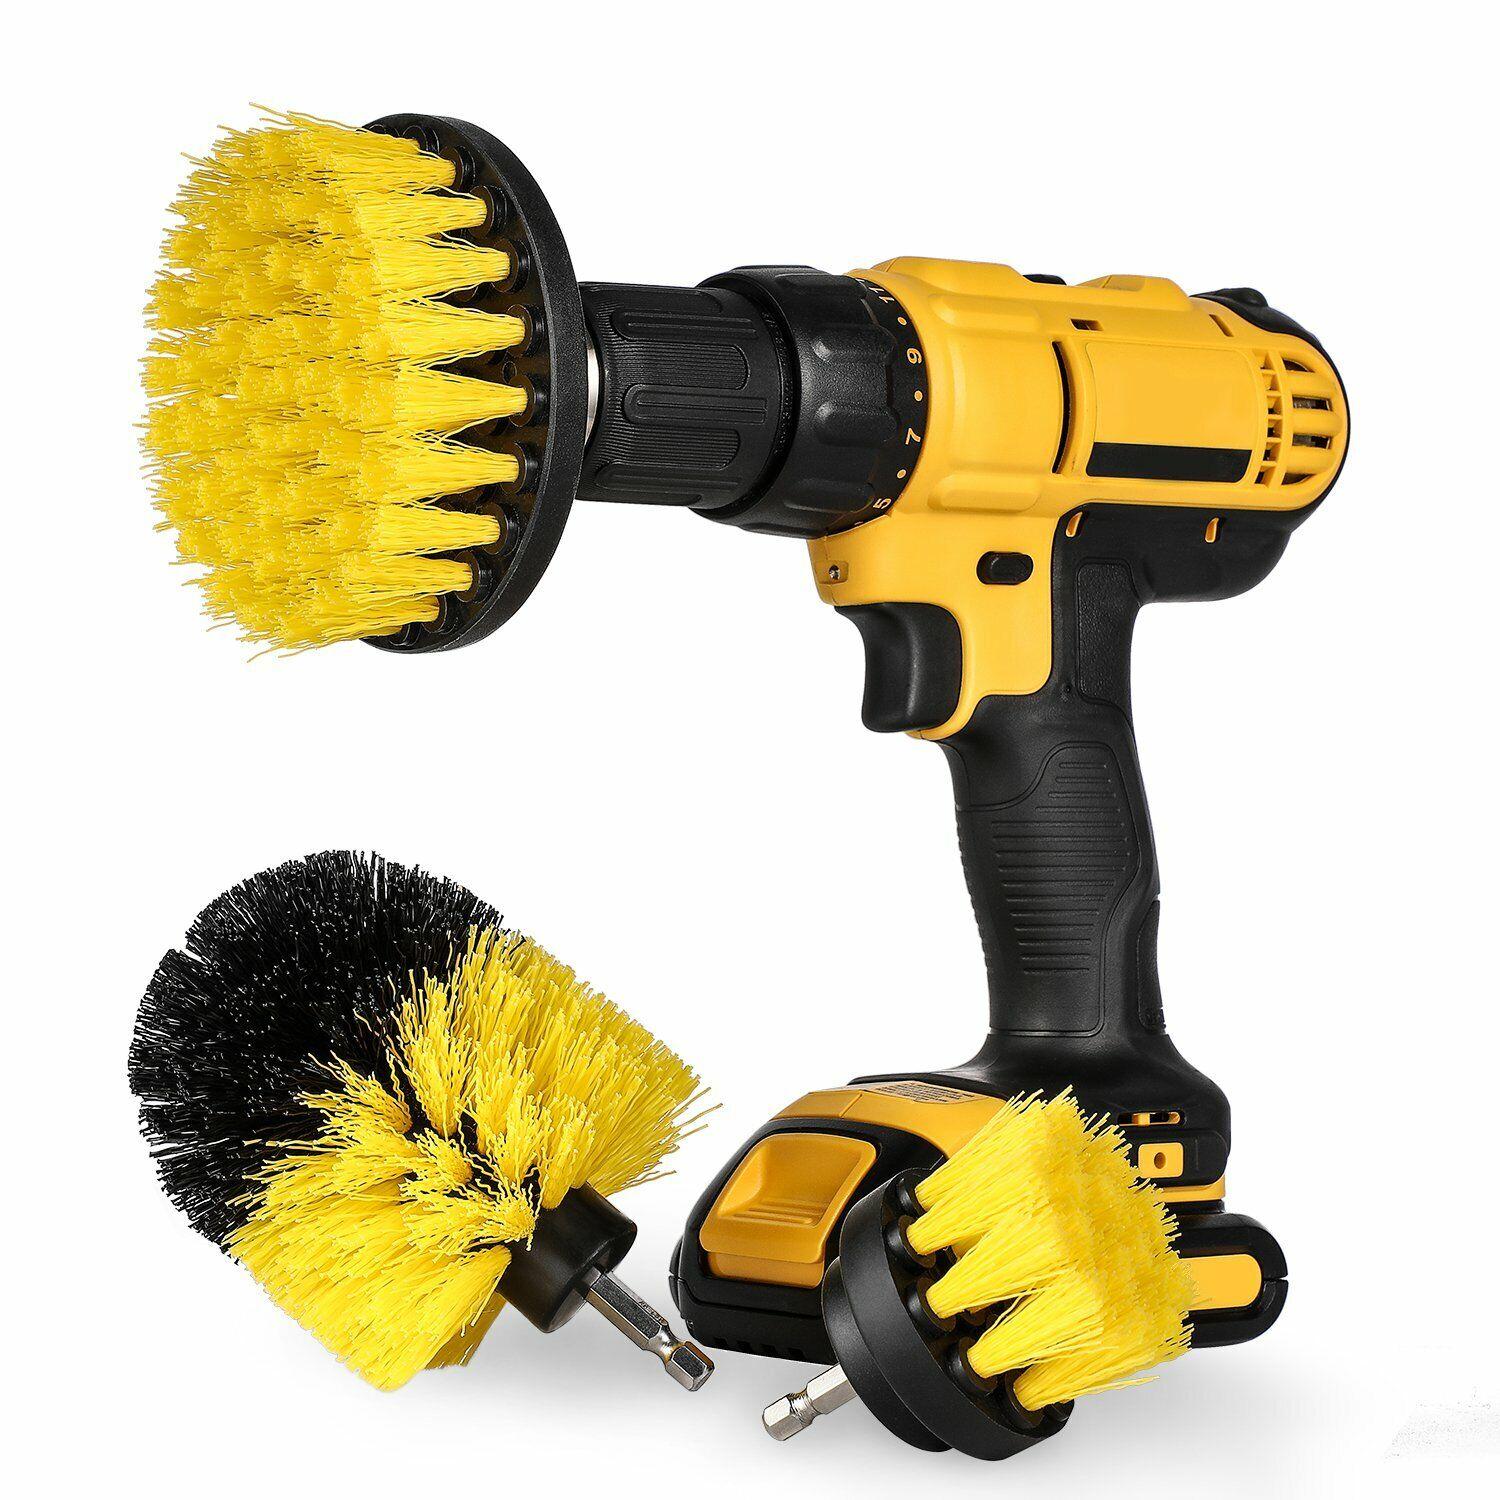 3Pcs/Set Drill Brush Bathroom Tile Grout All Purpose Power Scrubber Cleaning Kit Cleaning Products